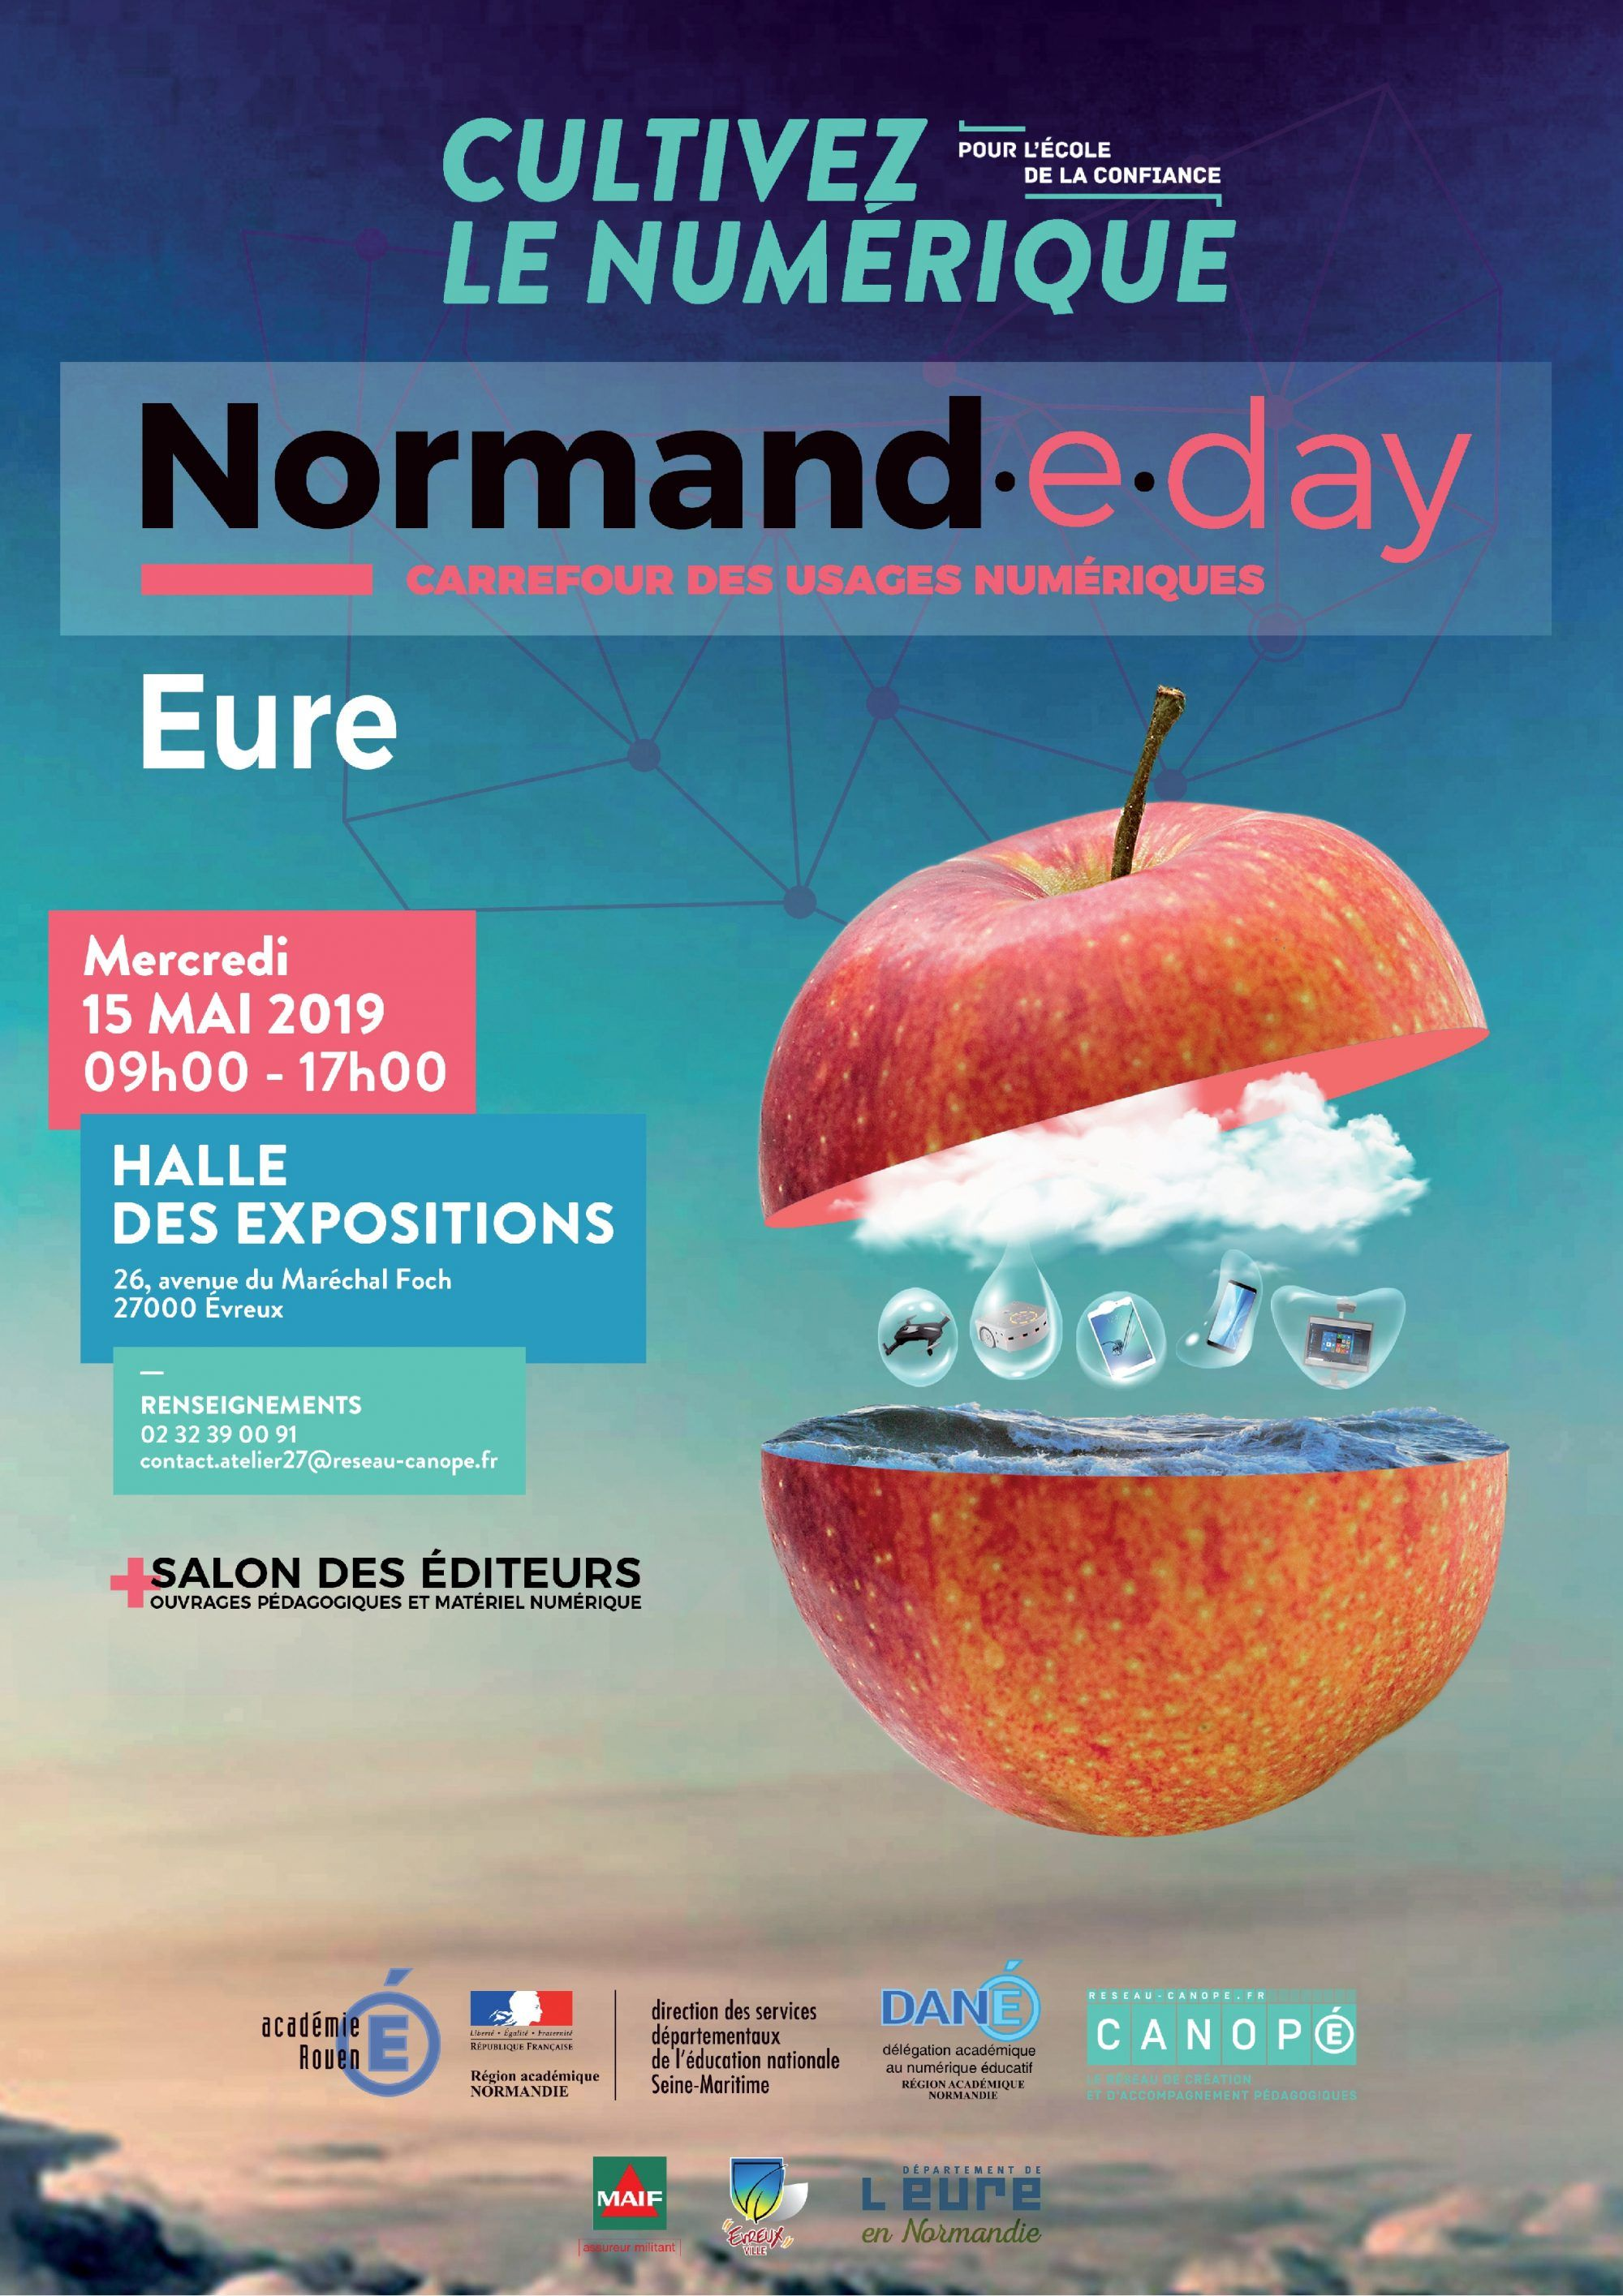 Normand-e-day de l'Eure